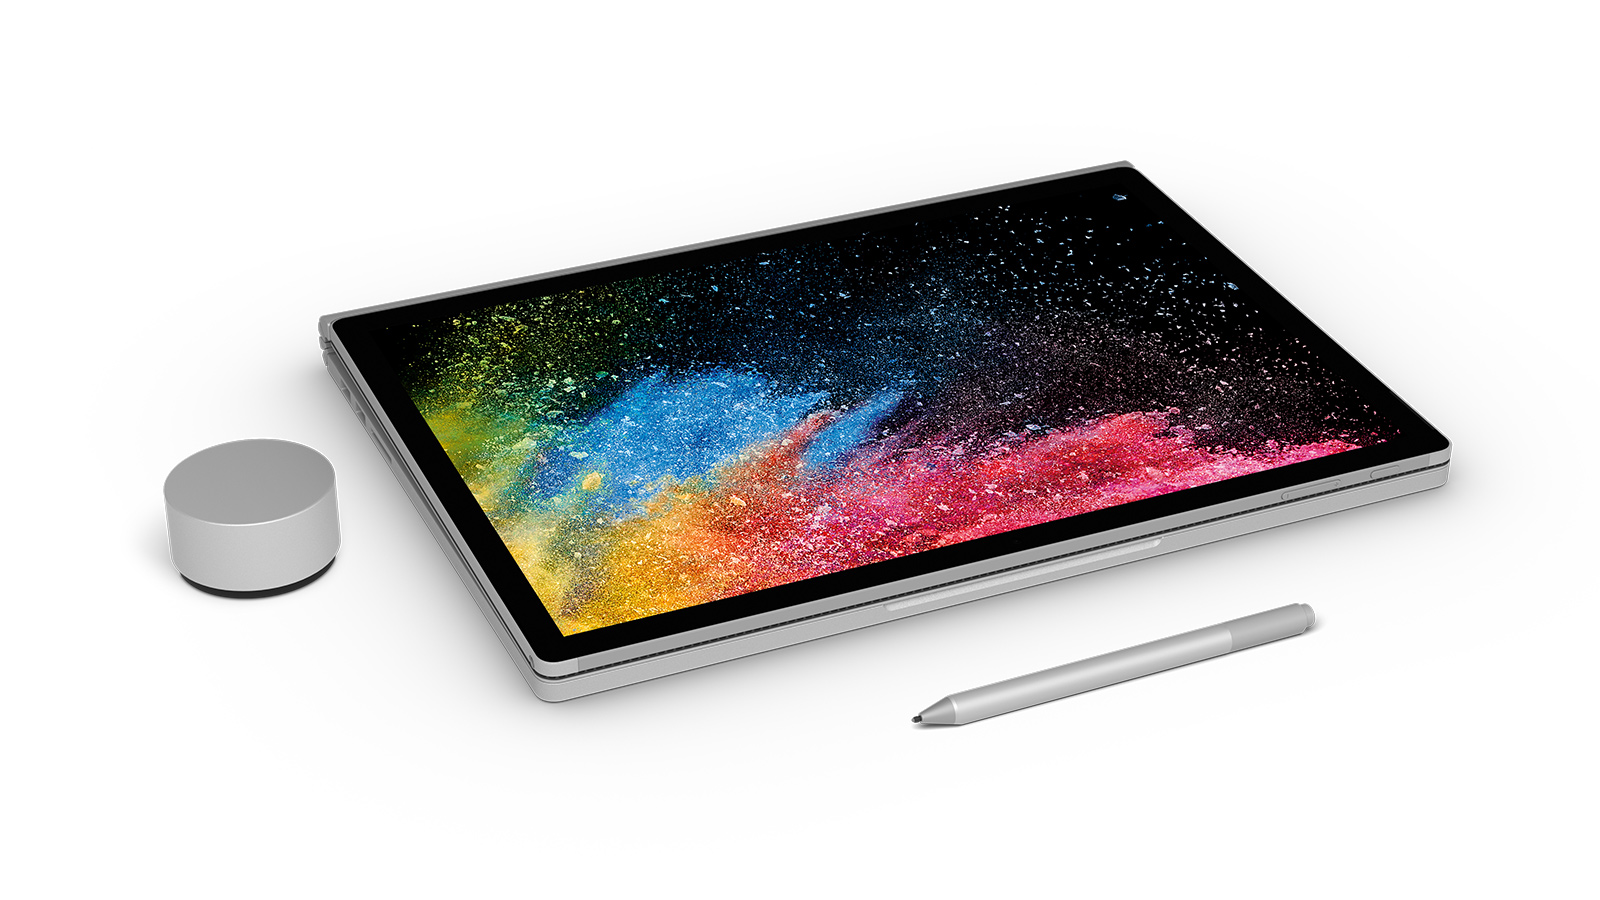 Surface Book 2 with start screen shown in clipboard mode with Surface Dial and Surface Pen.